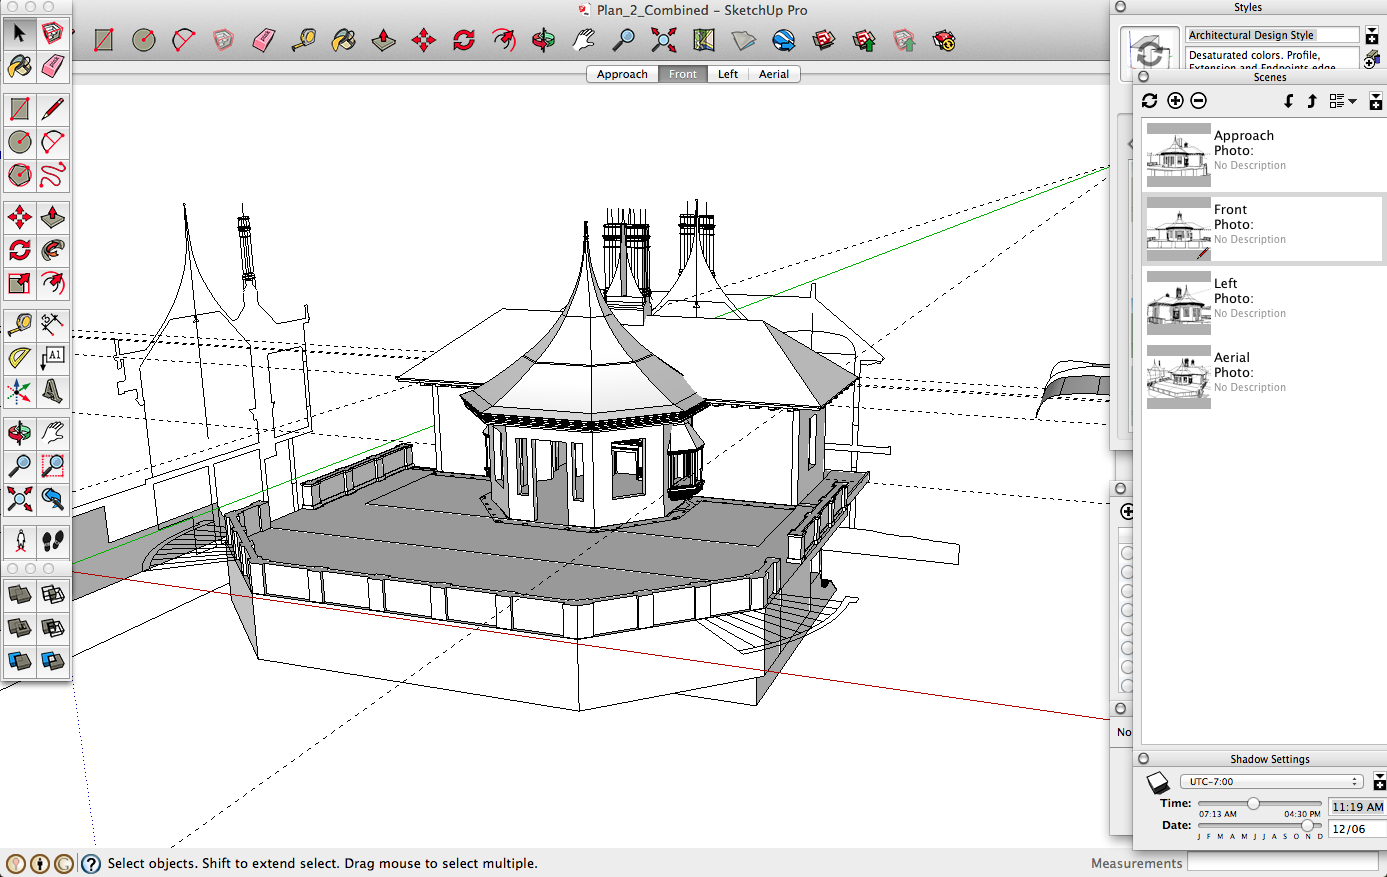 SketchUp_Process Model 3